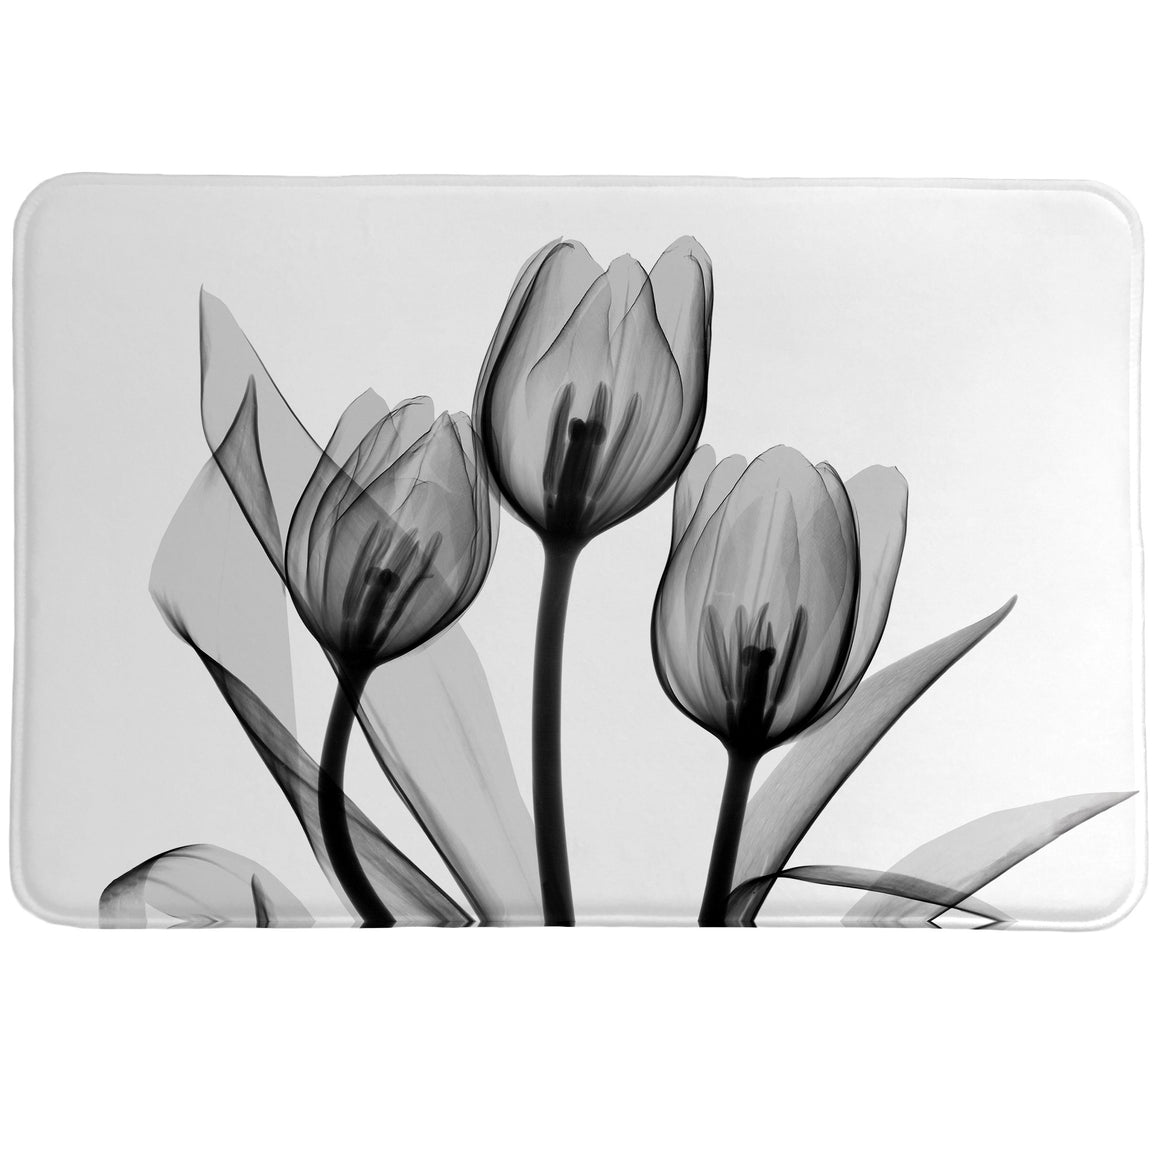 Monochromatic Black Tulips Memory Foam Rug features a calming, beautiful floral image made with a special technique using an x-ray machine and a cluster of flowers.